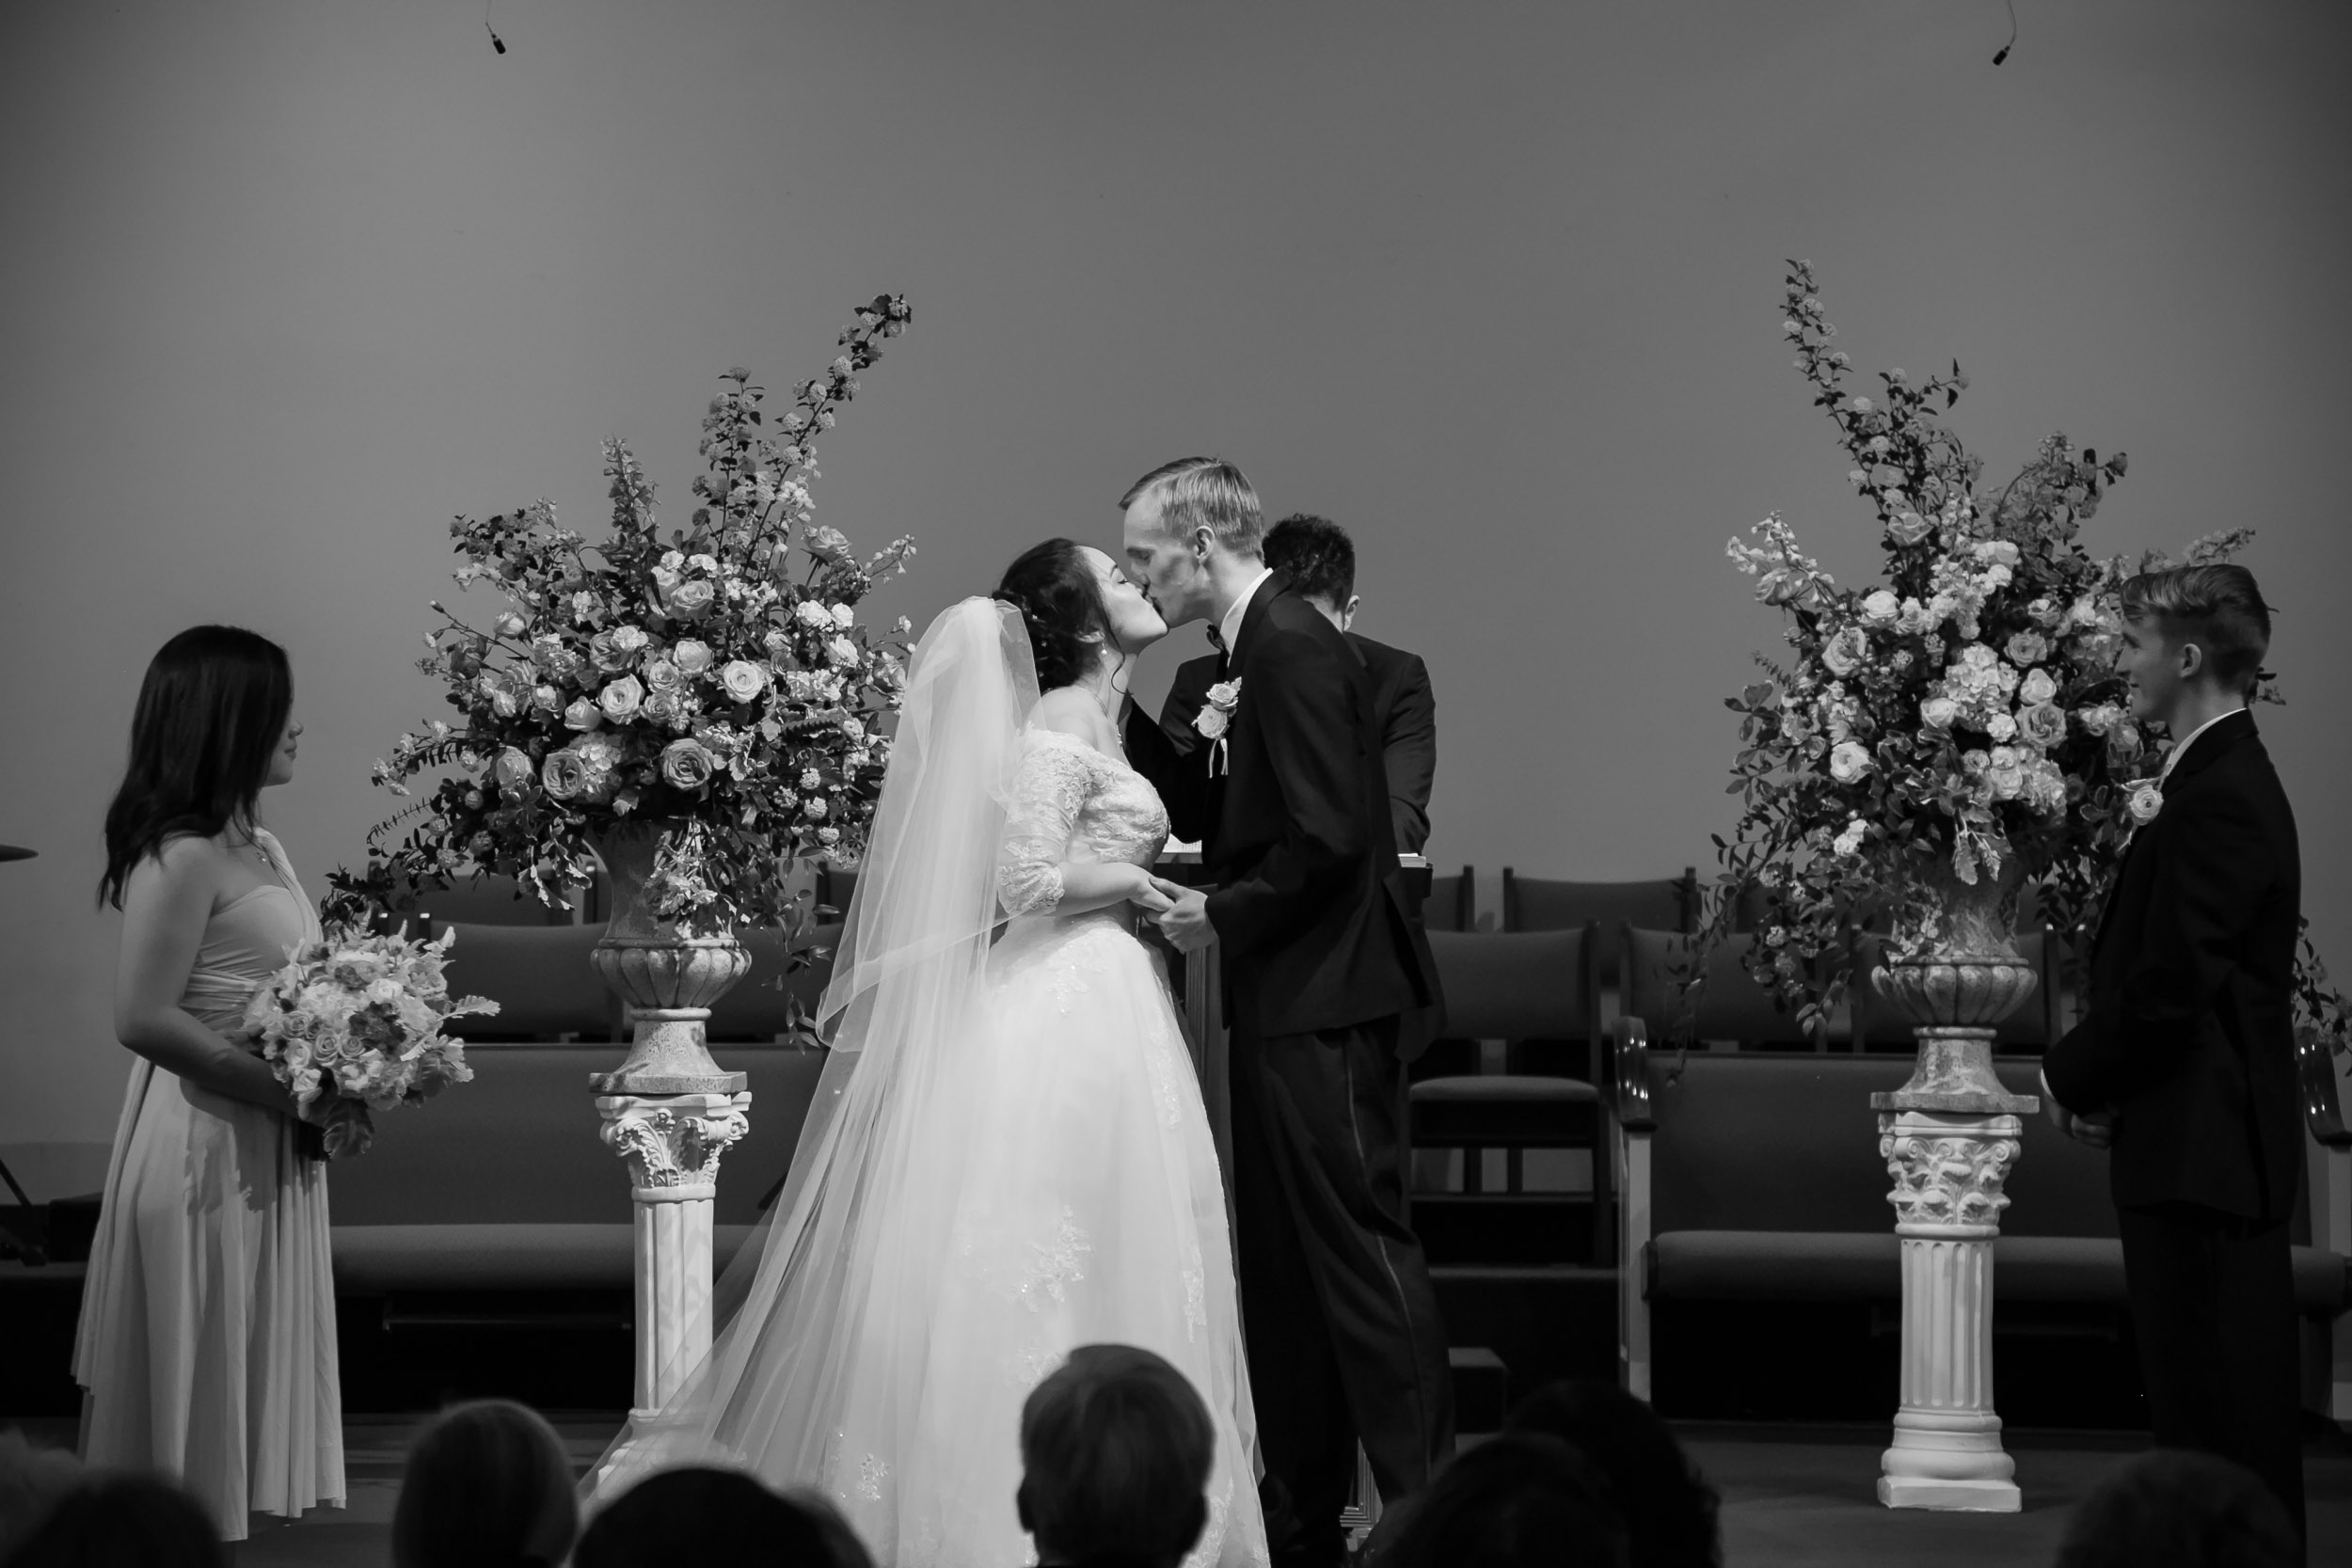 Raleigh Wedding Photographer | G. Lin Photography | Bride and groom's first kiss